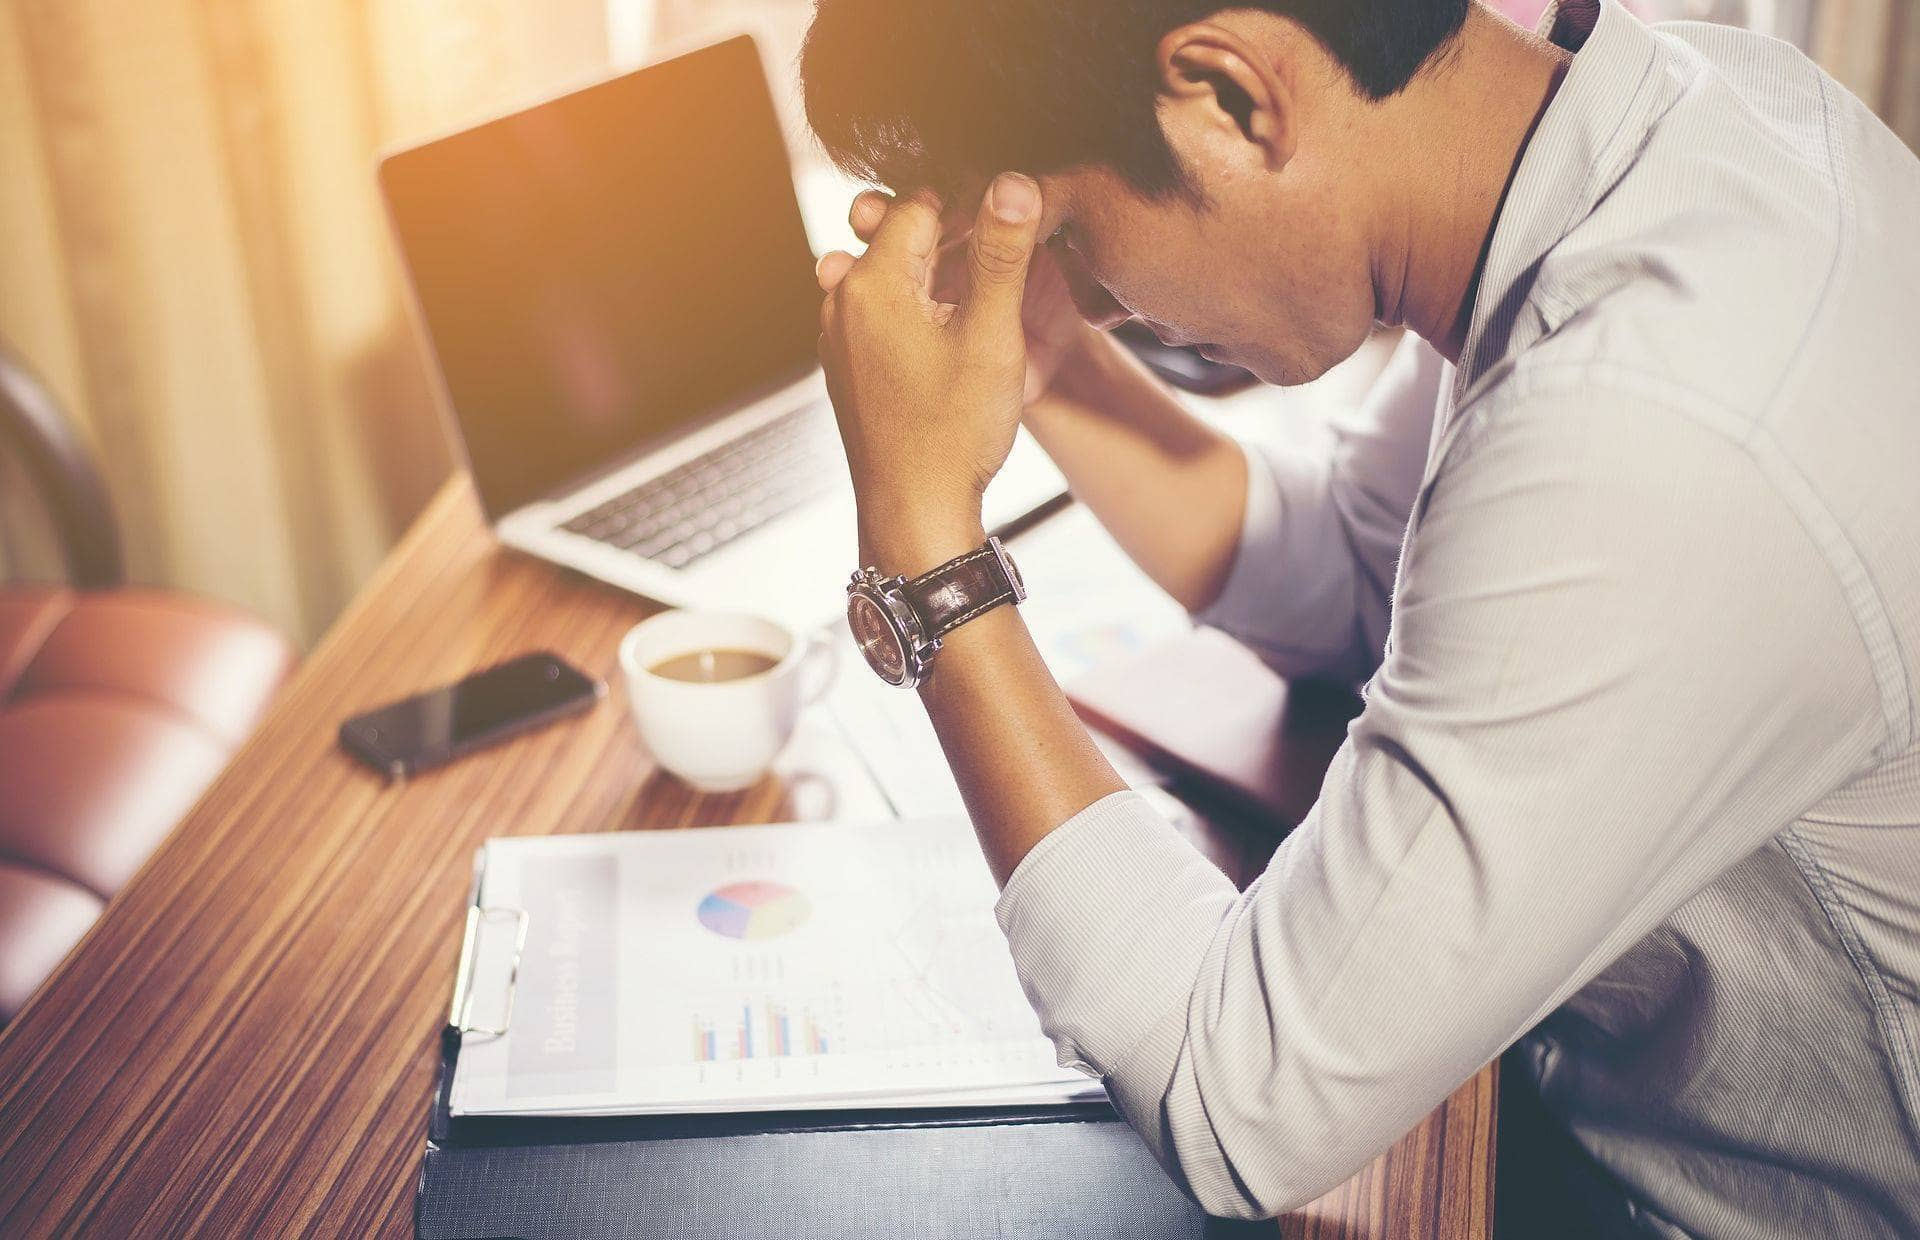 7 Tips to Manage Stress at Work